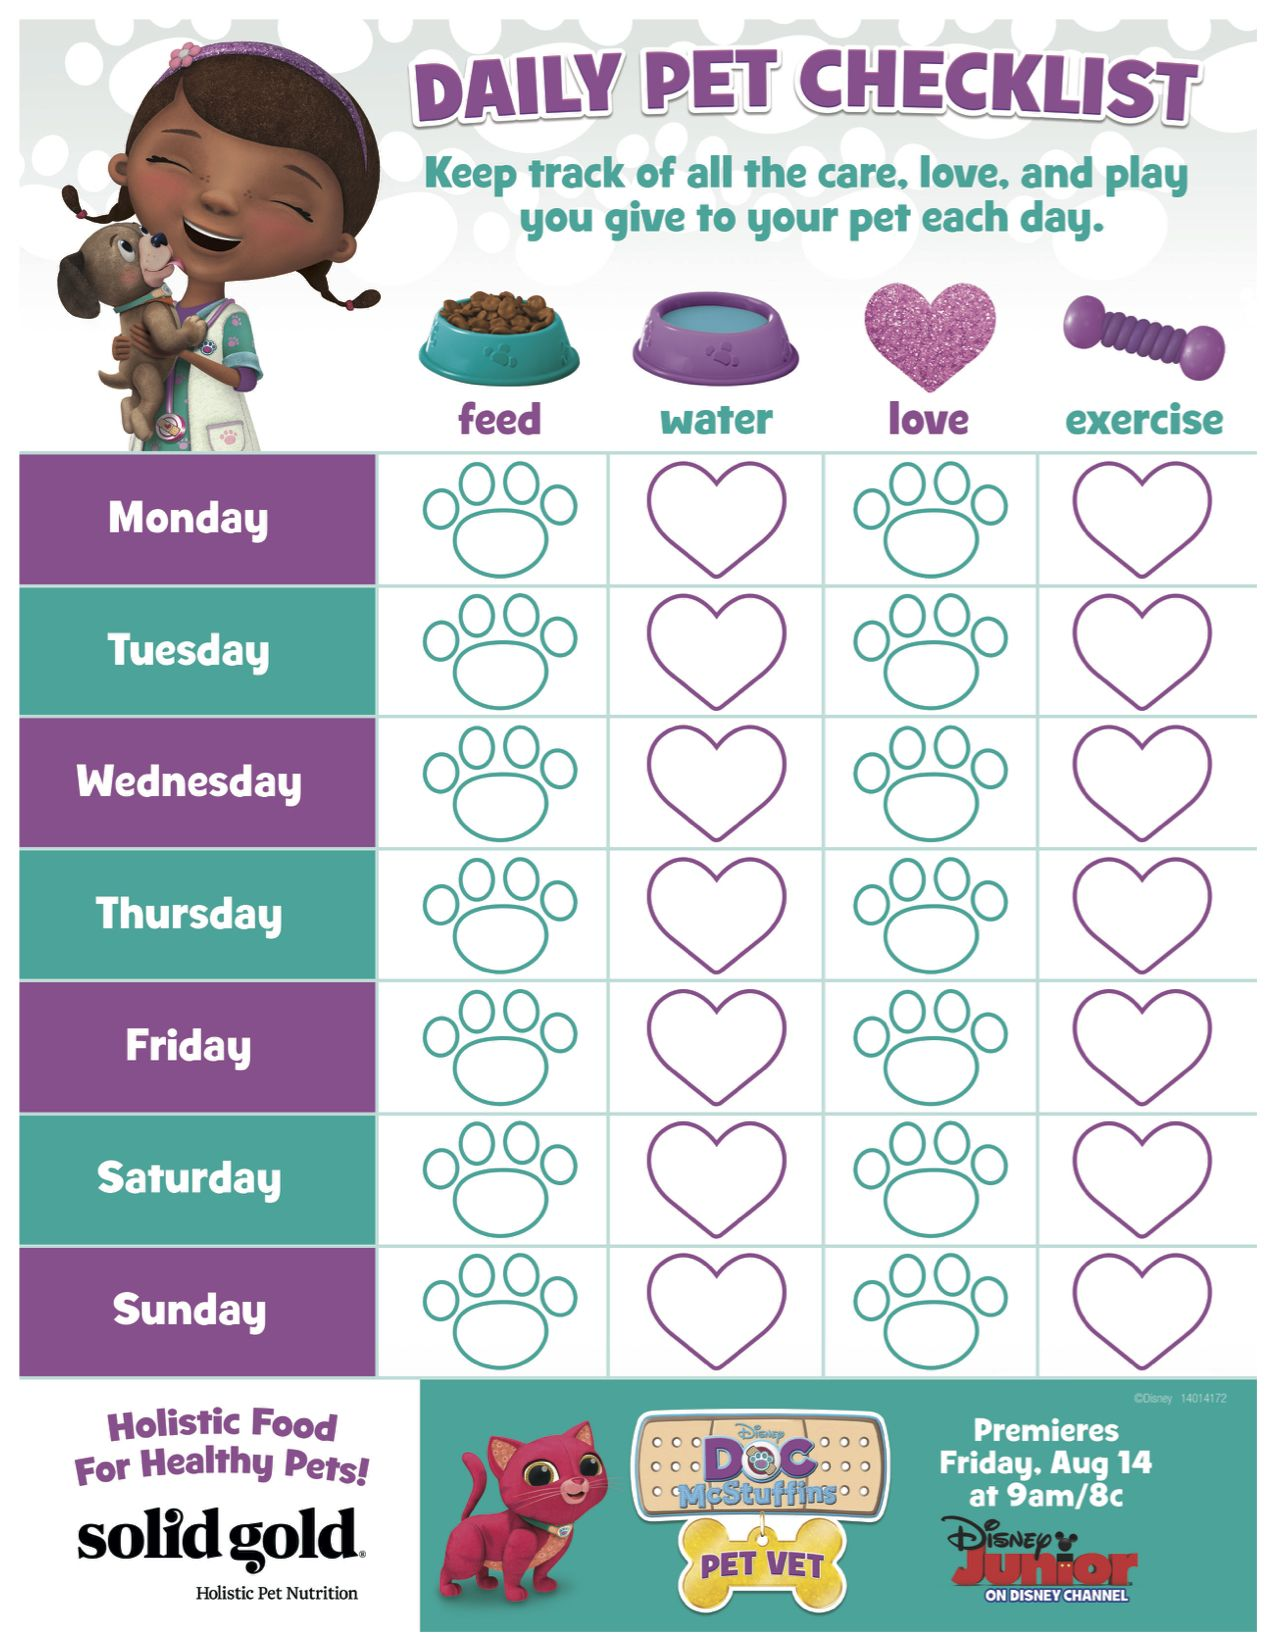 Taking Care Of A Pet Should Be Fun Not A List Of Chores Keep The Kids Motivated With This Daily Pet Checkli Pet Vet Dog Care Checklist Doc Mcstuffins Pet Vet